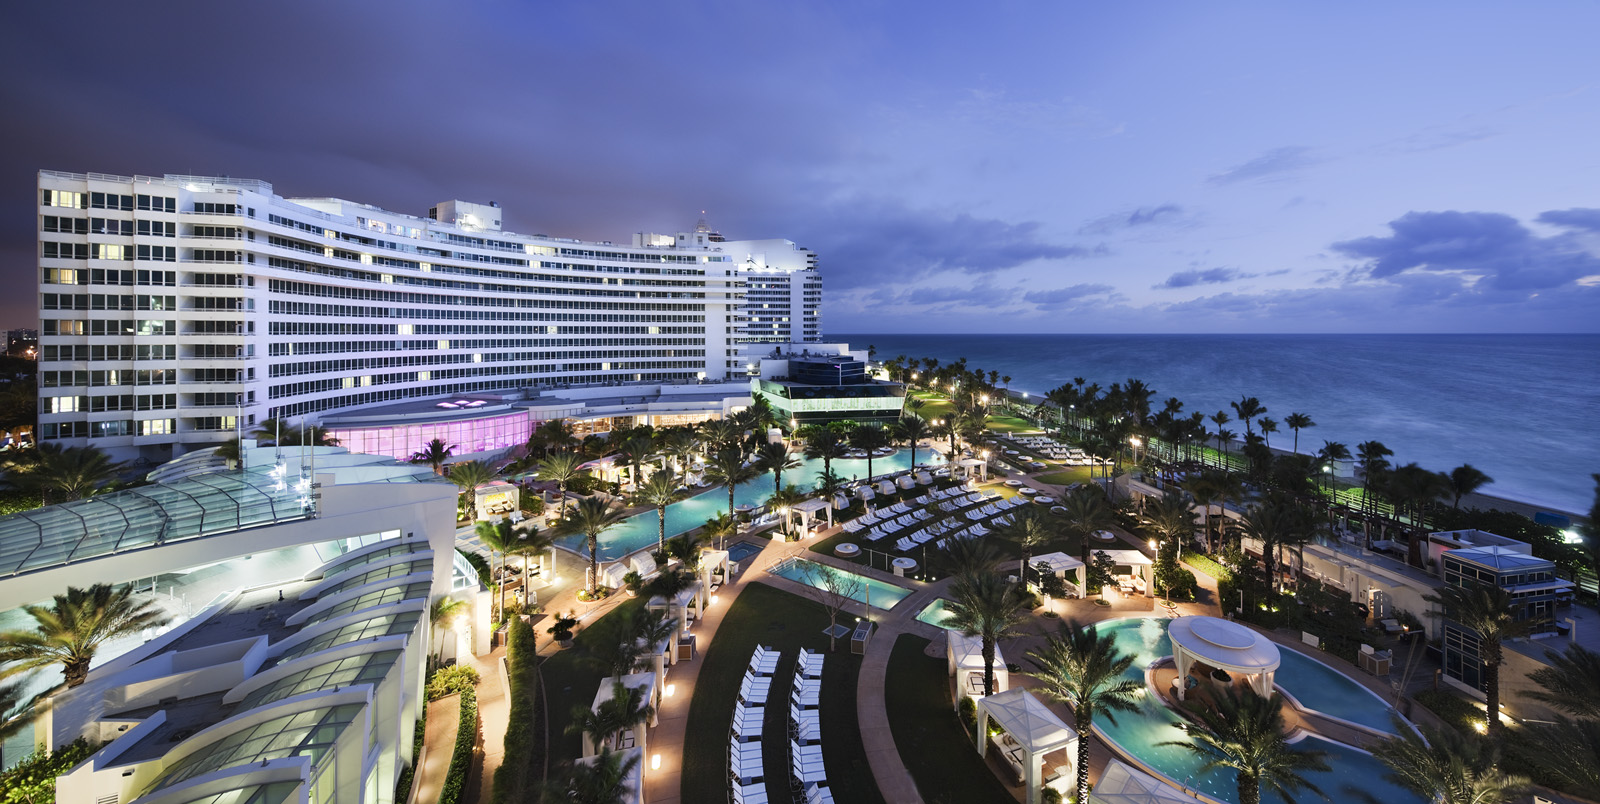 The Fontainebleau a Miami Beach